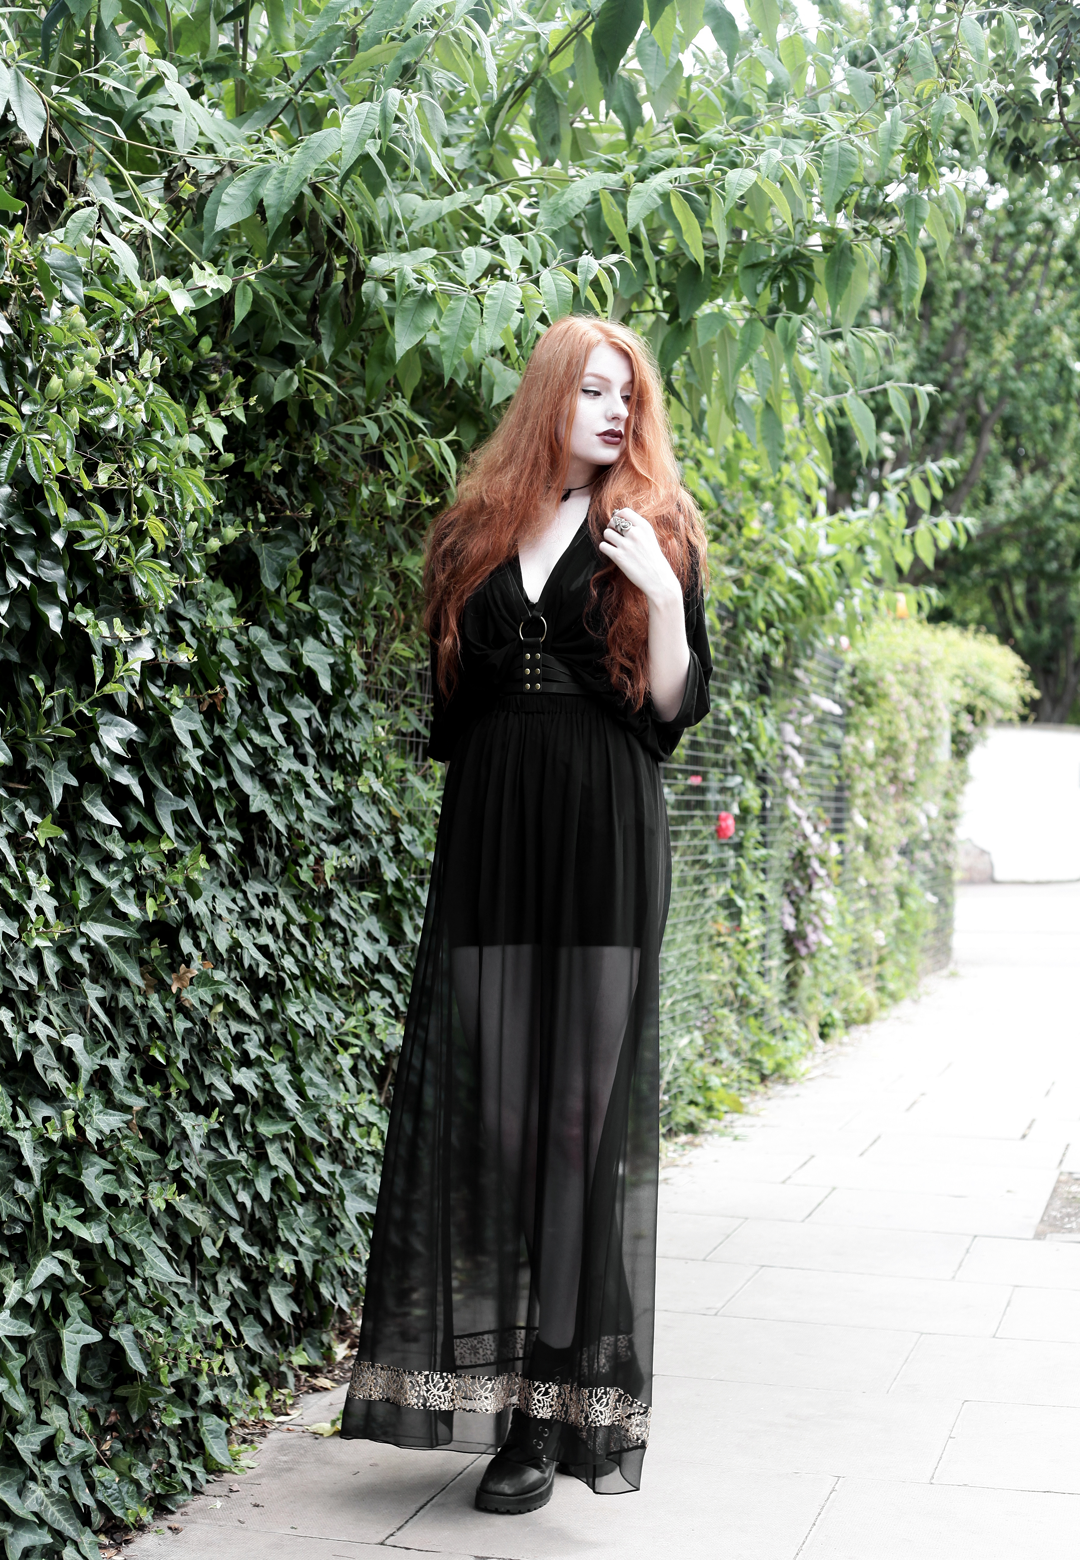 Olivia Emily wears Killstar Mesh Top, Dark Thorn Chastity Sheer Maxi Skirt, Asos Harness and Unif Dedi Boots